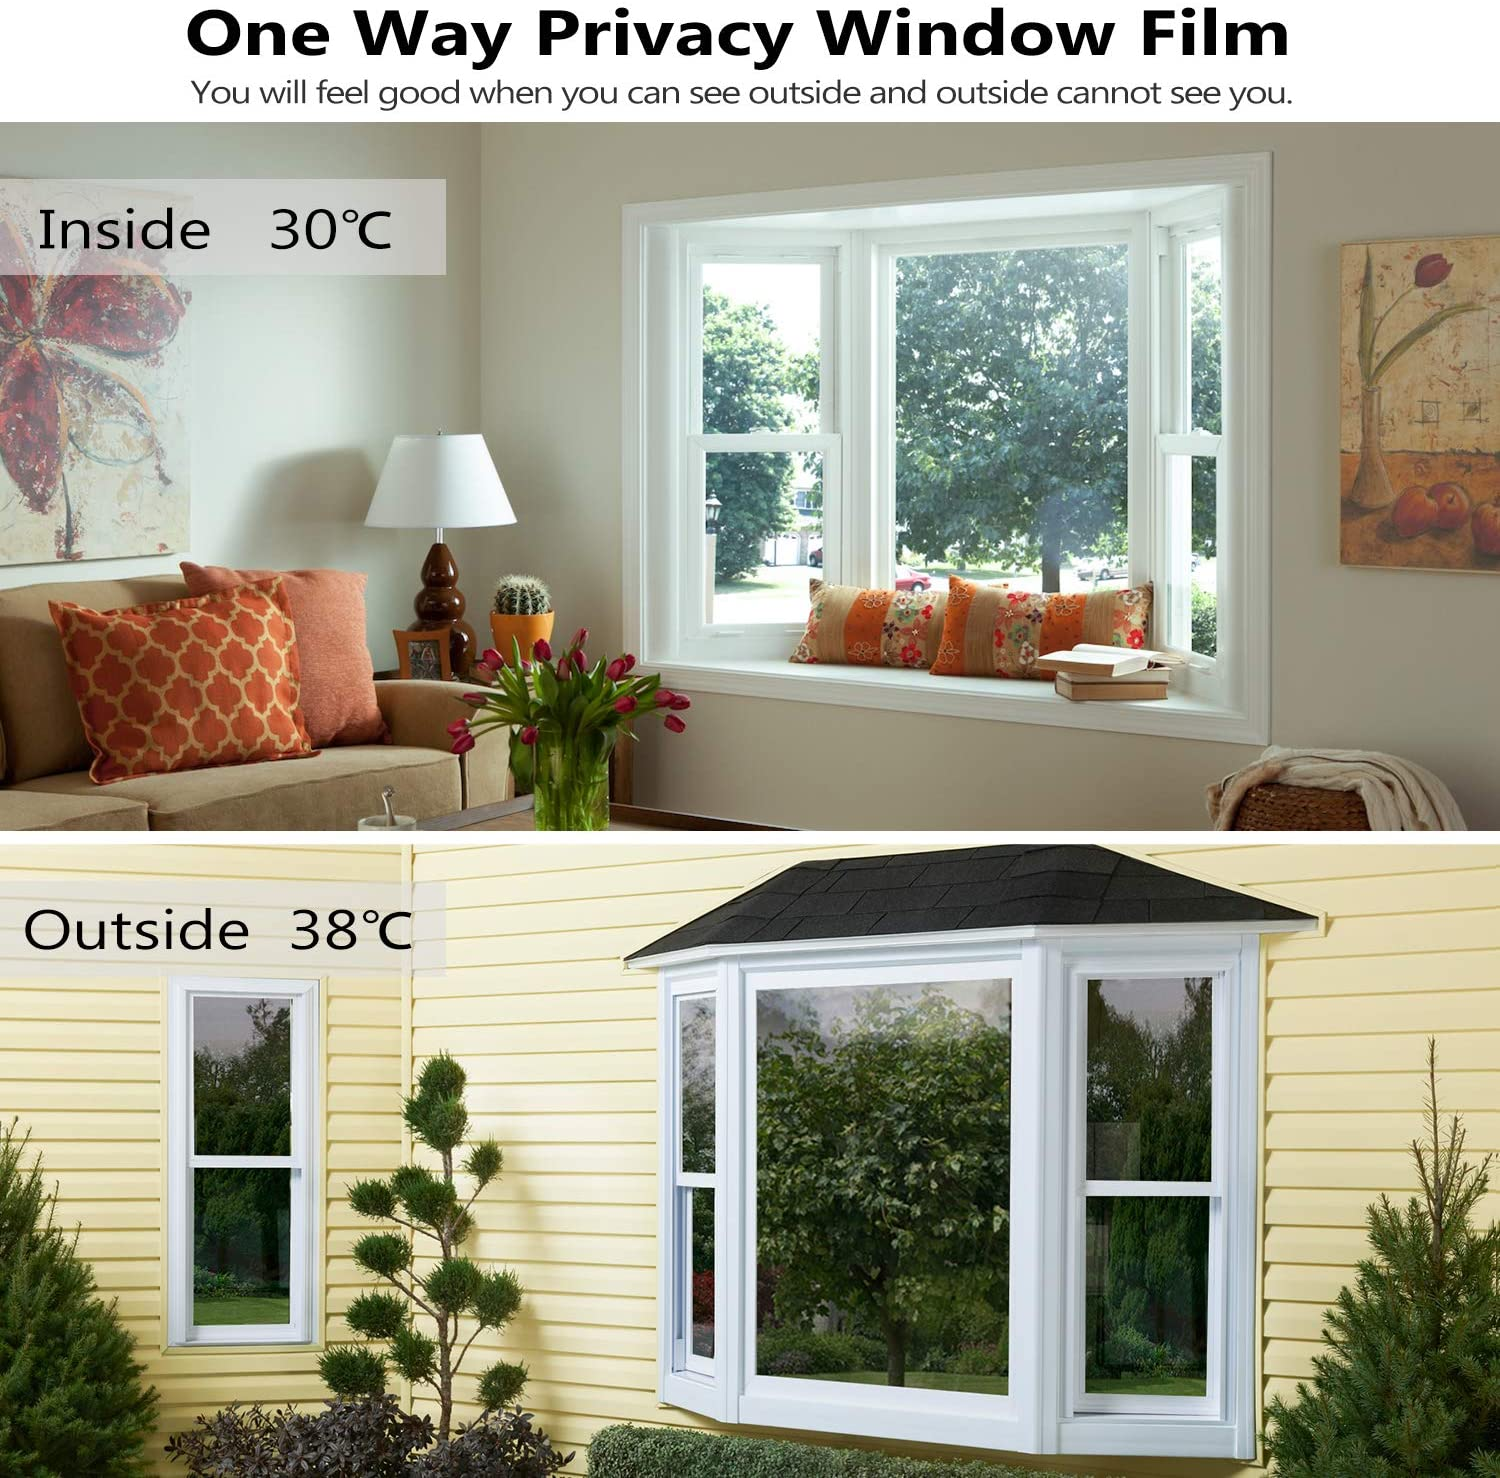 One Way Daytime Privacy Window Tint Self Adhesive Solar Film Anti UV Heat Rejection Green-Silver Mirror Window Film for Home 3